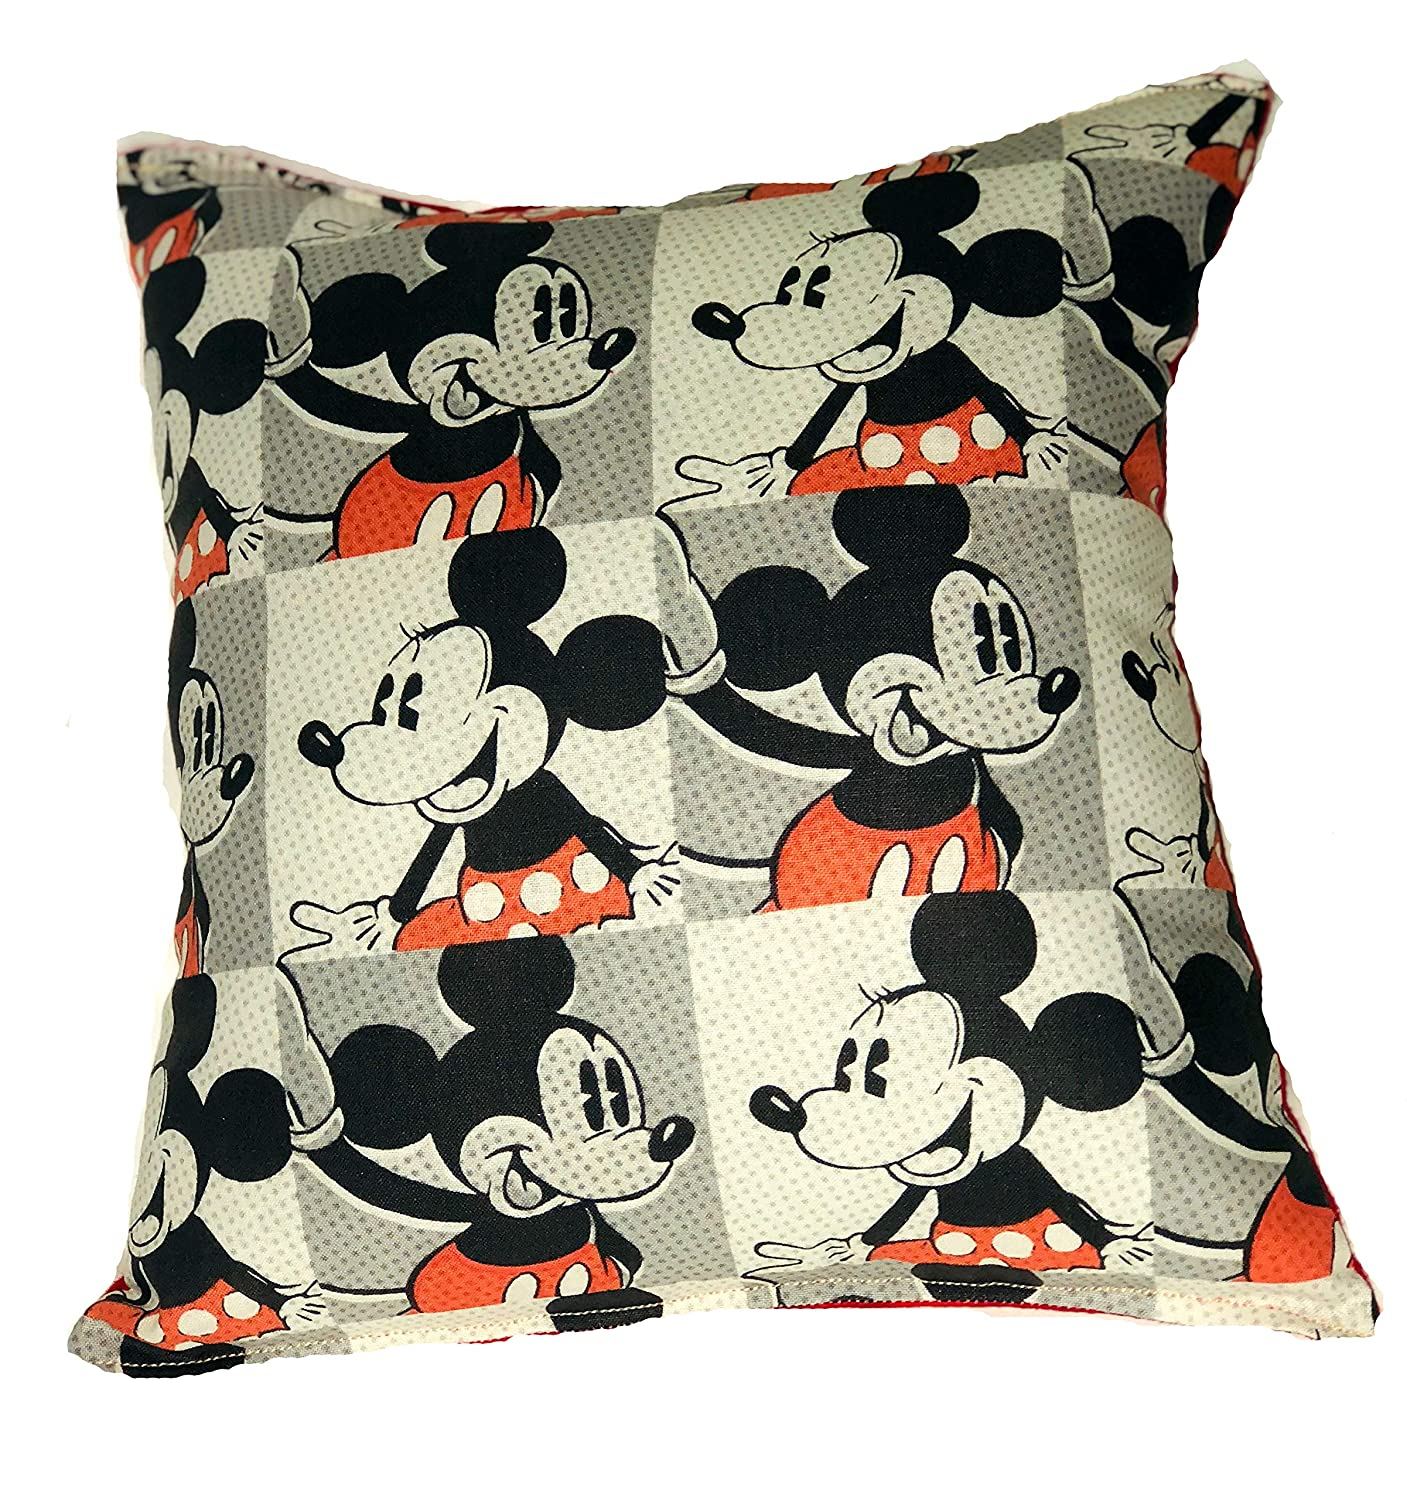 "MICKEY & MINNIE MOUSE Pillow HANDMADE Cotton/Flannel Toddler,Travel, Daycare Pillow is approximately 10"" X 11"